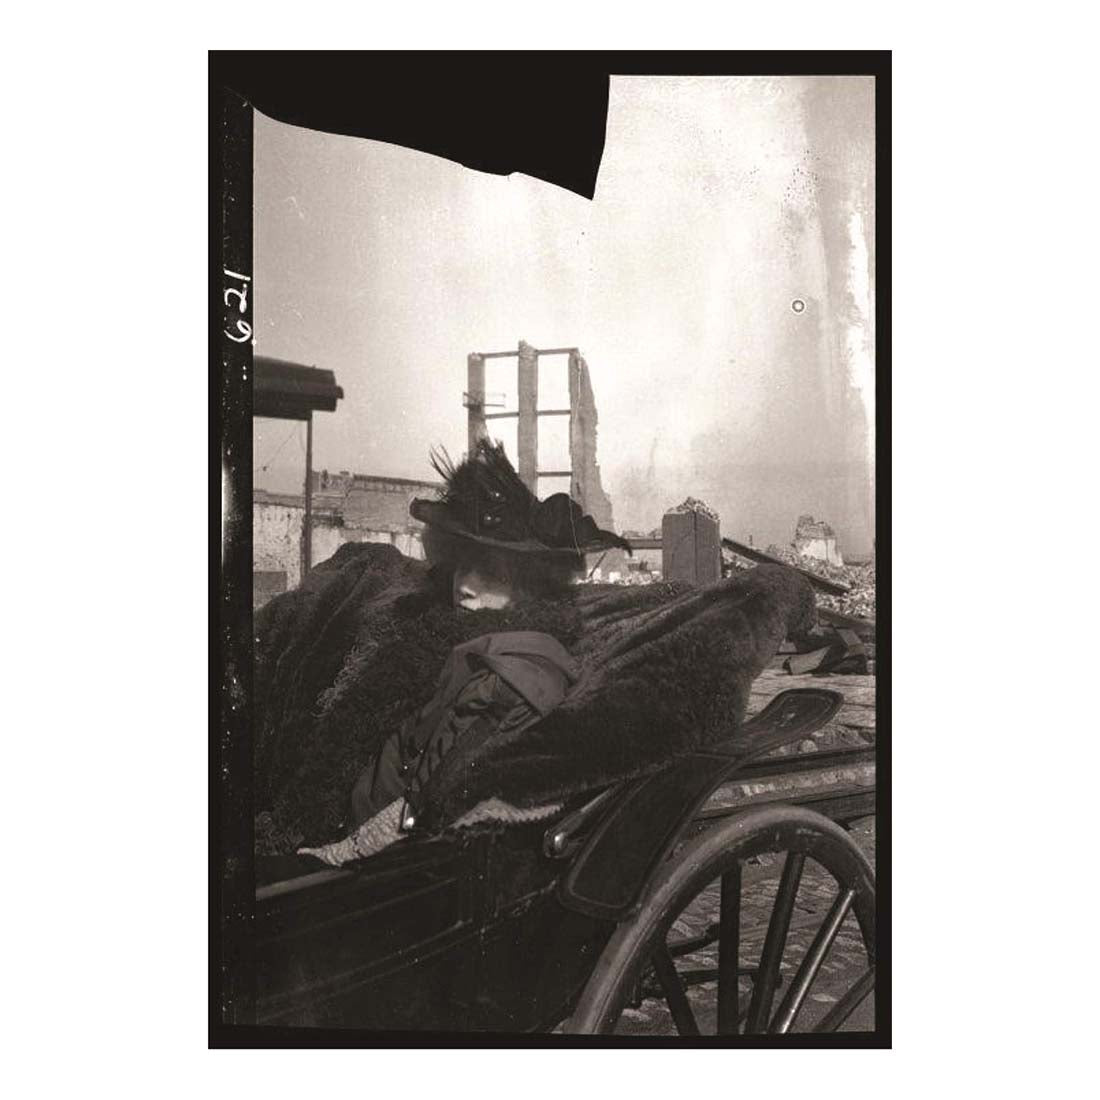 Among the Ruins: Arnold Genthe's Photographs of the 1906 San Francisco Earthquake and Firestorm